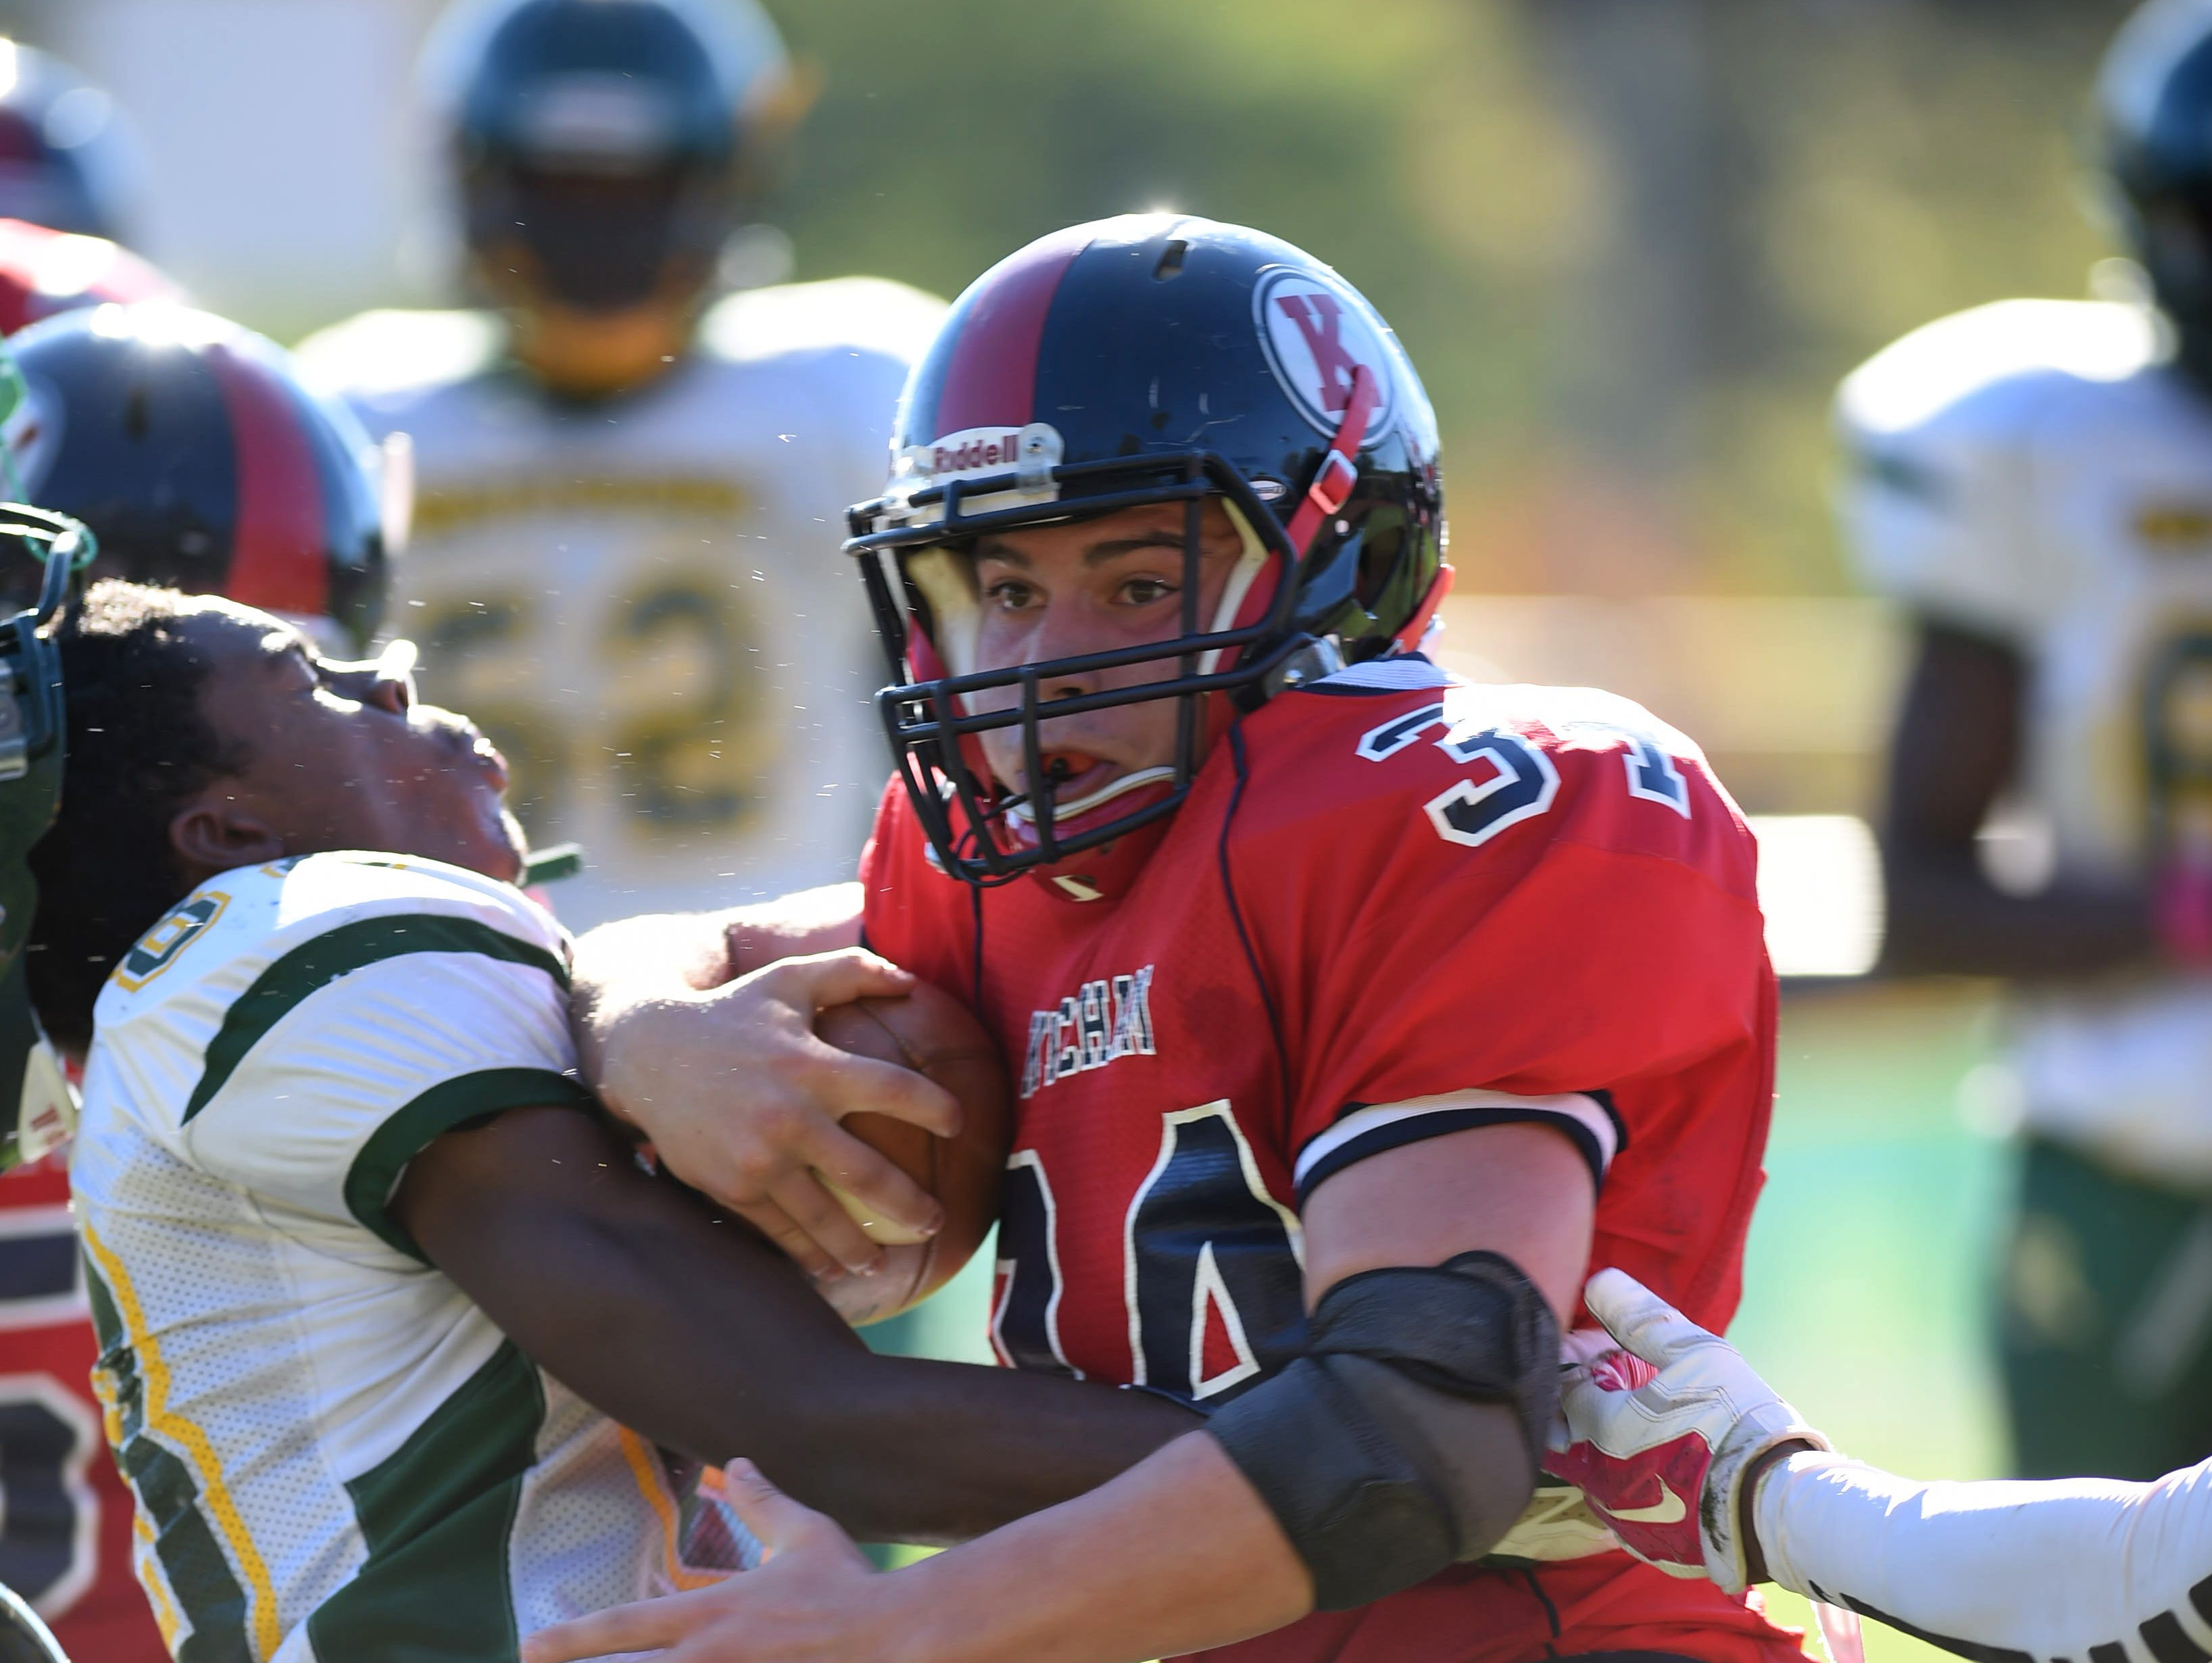 Ketcham's Jesse Pascale pushes past Ramapo's Carlos Colon during Saturday's game in Wappingers Falls.